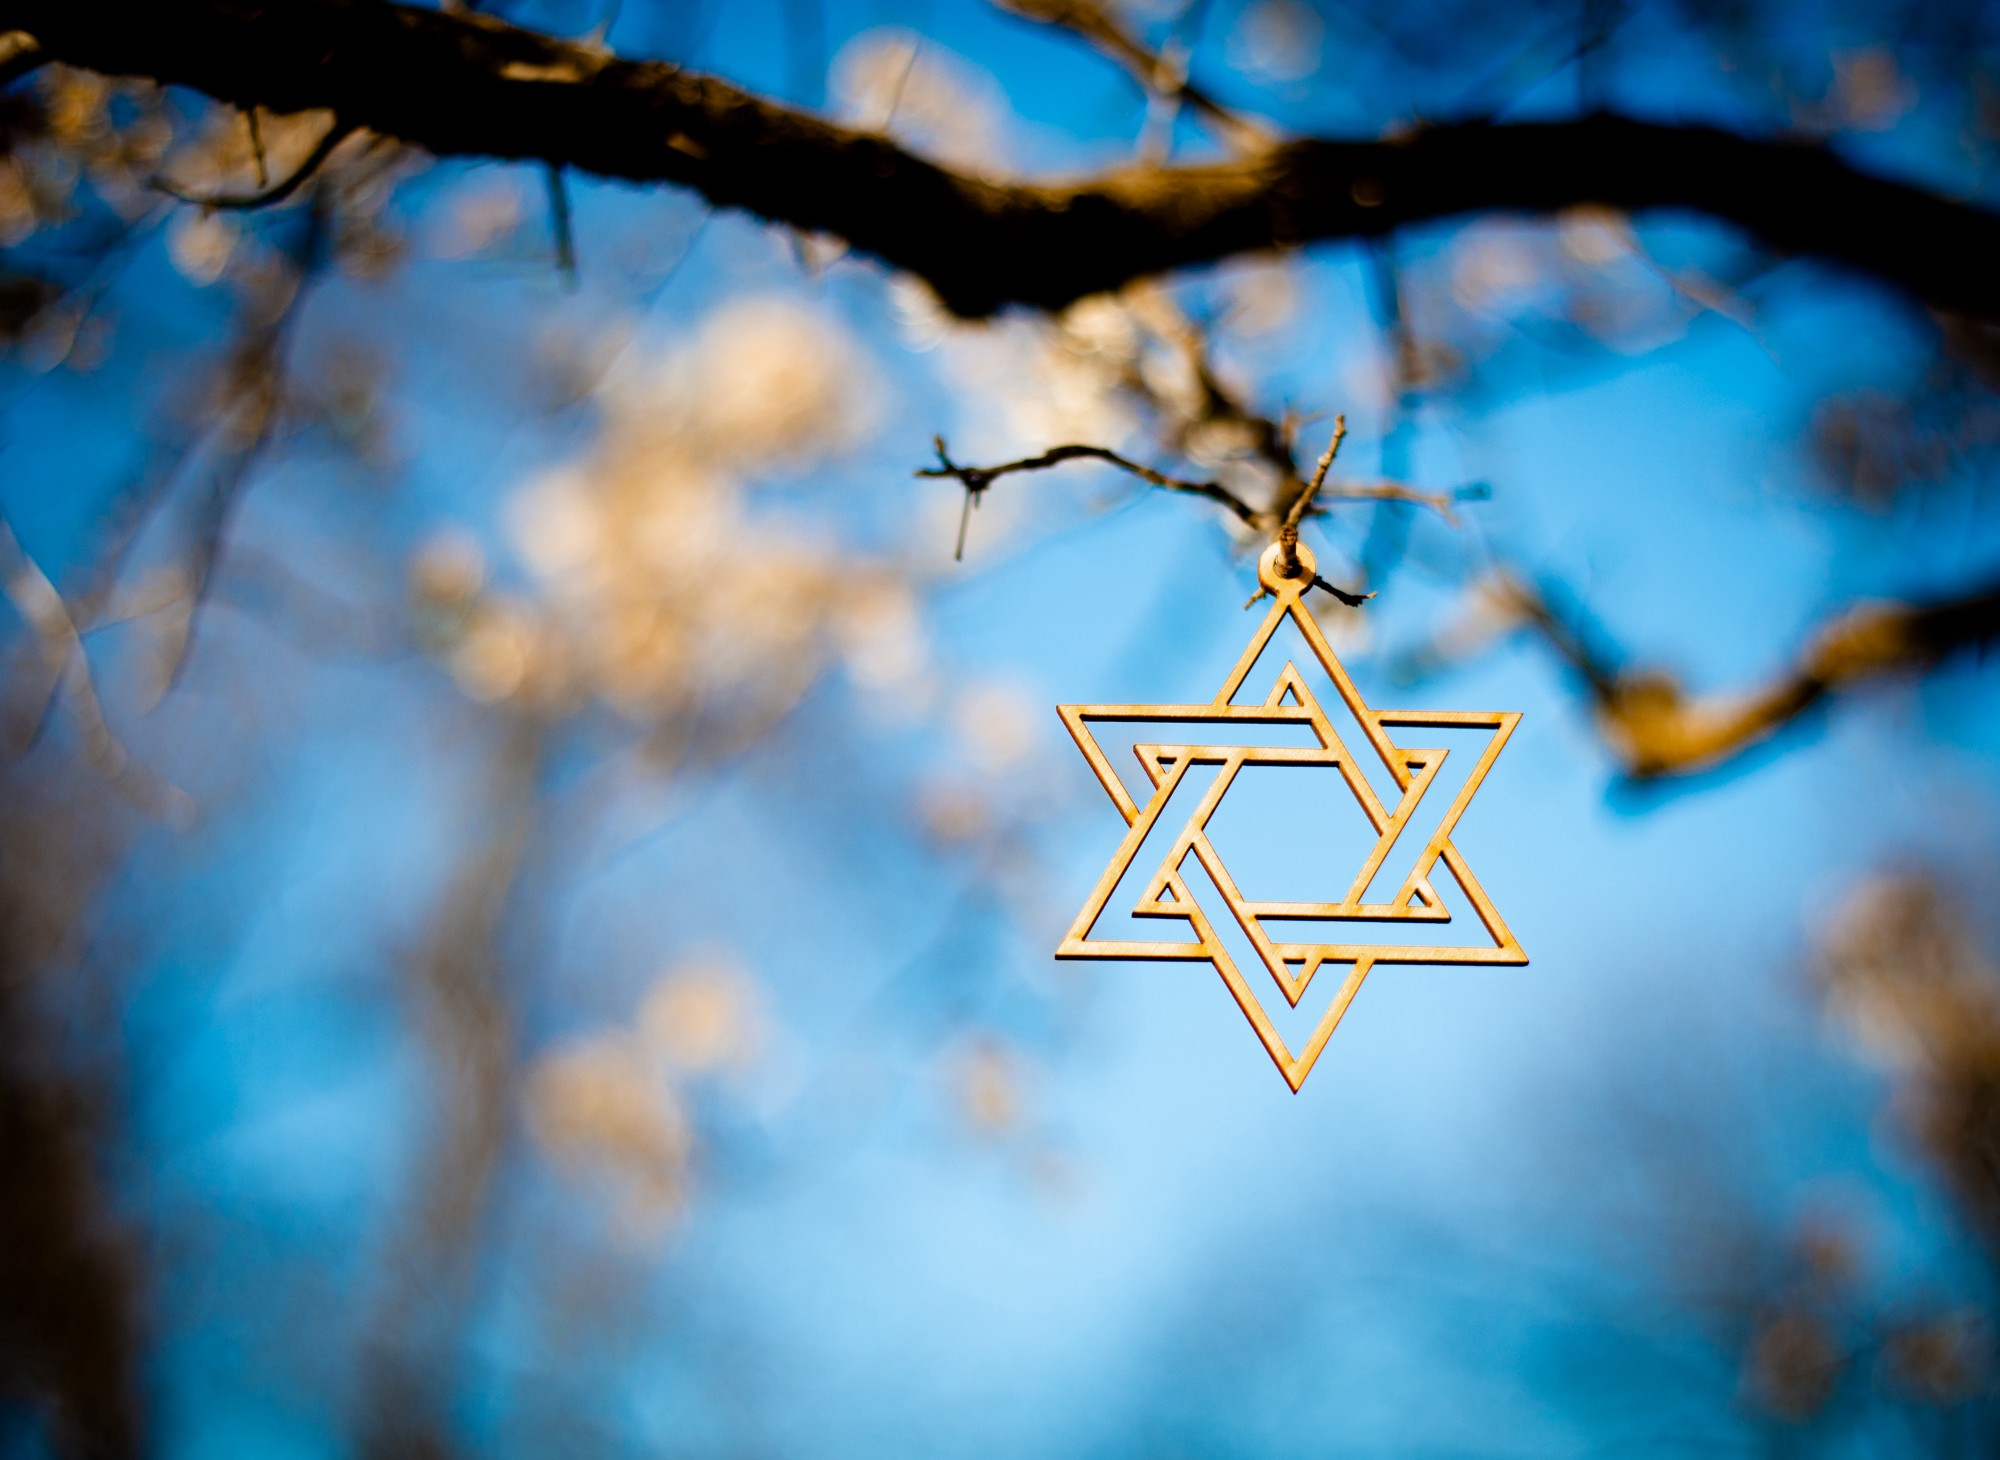 Gold star of David handing from a flowering tree just beginning to bloom